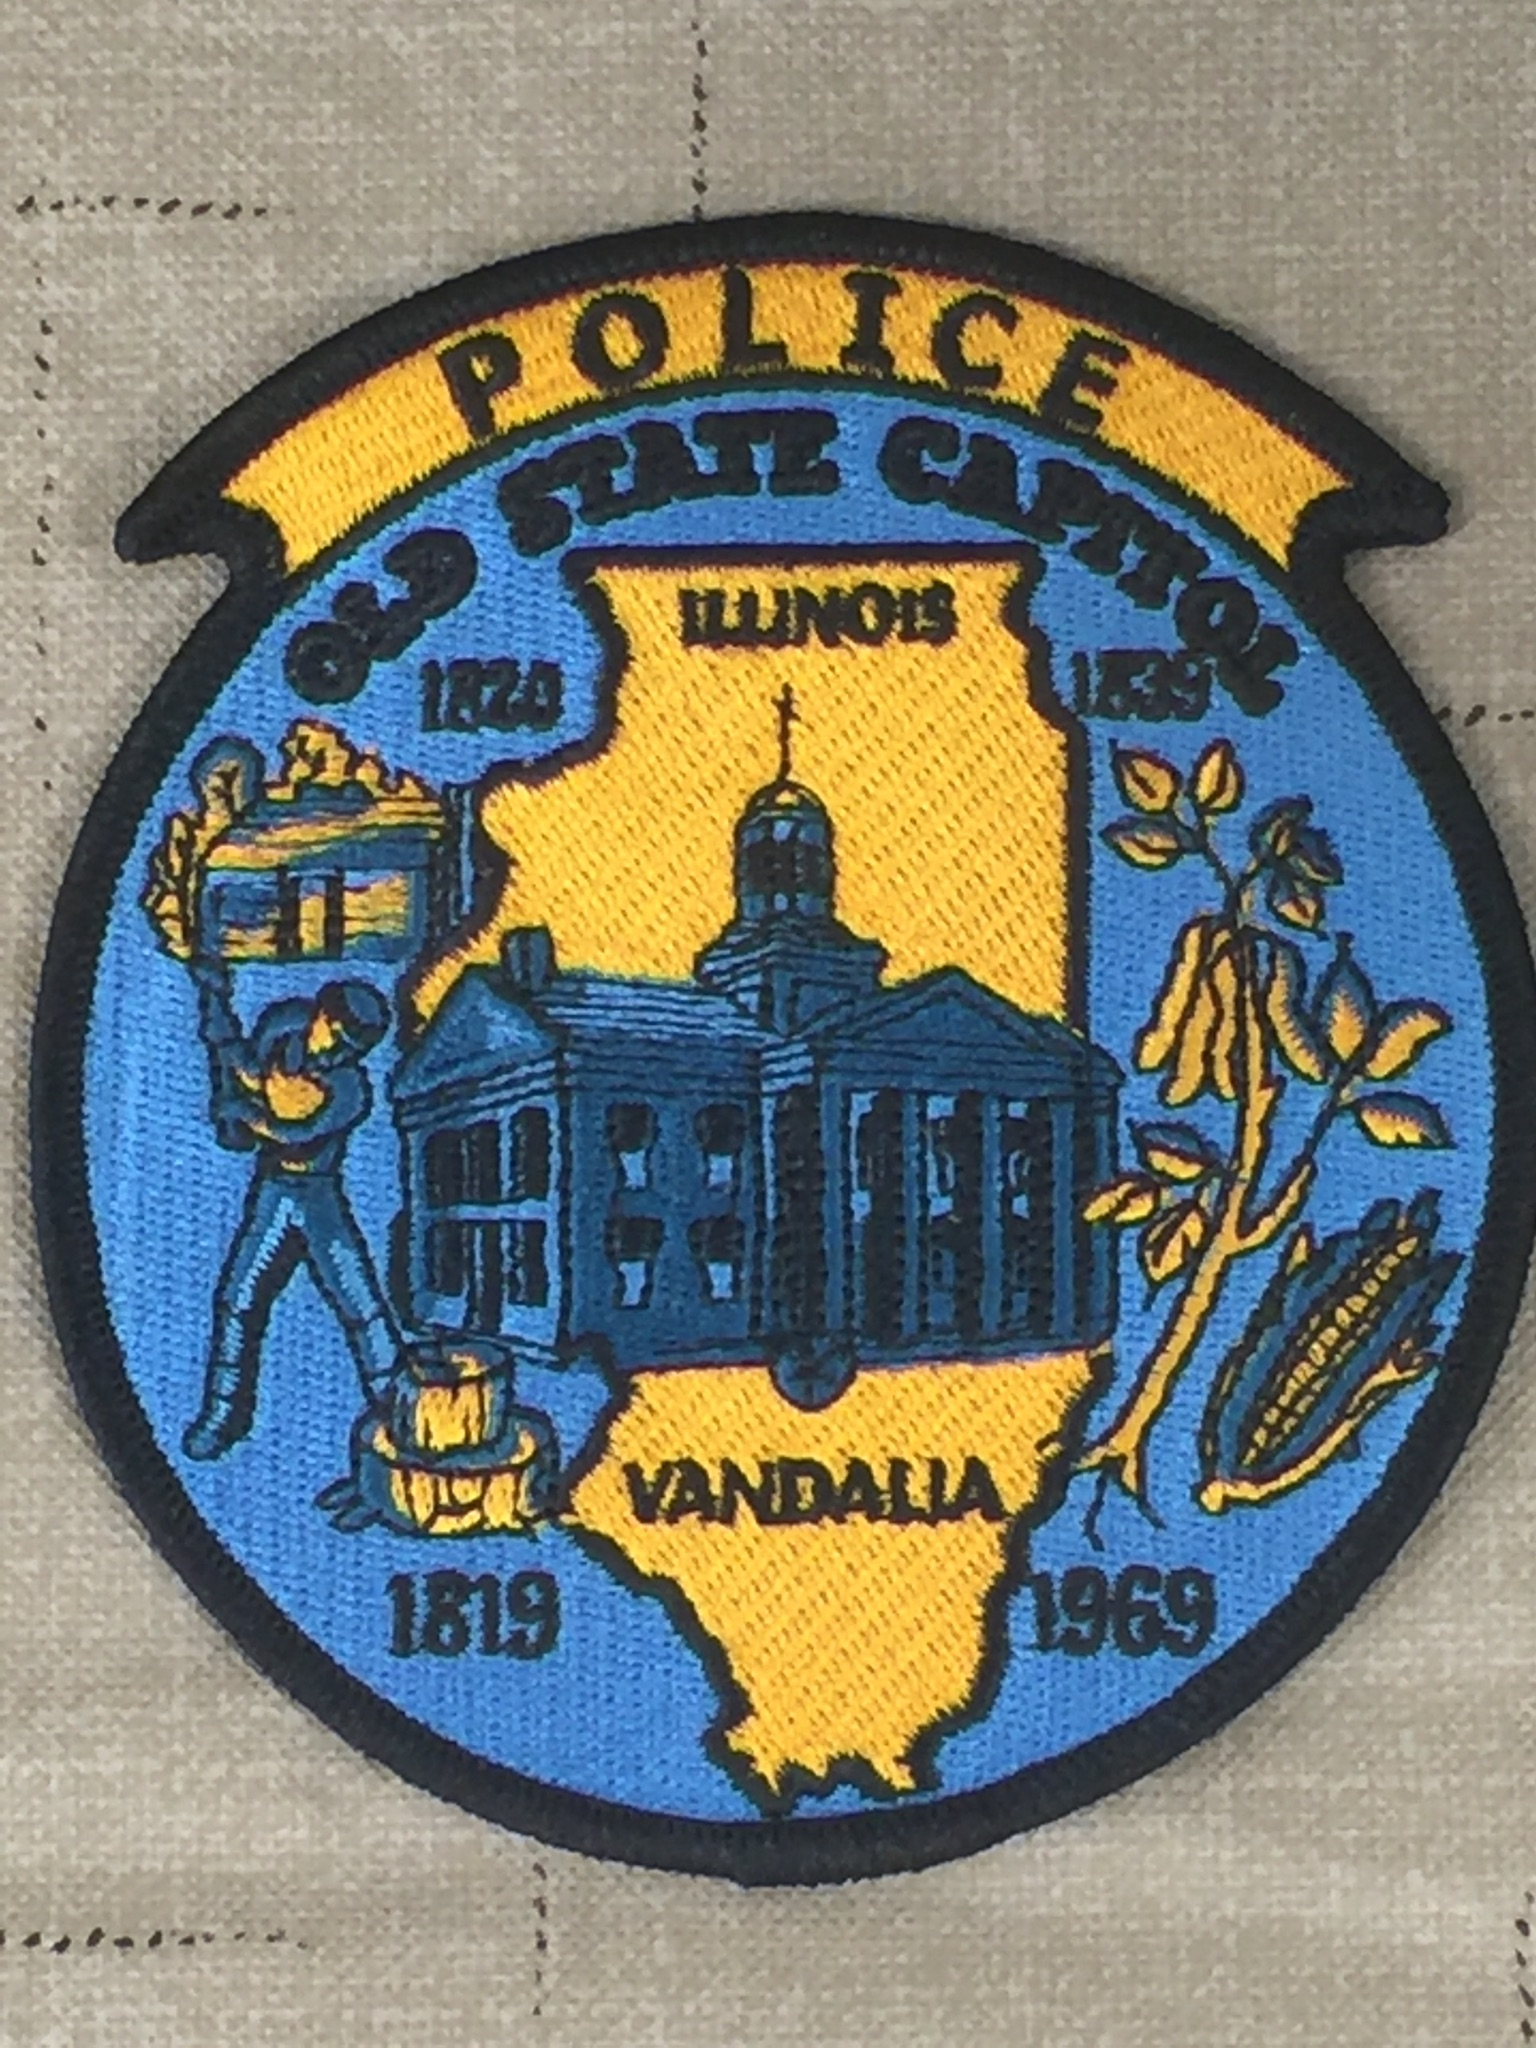 Vandalia PD catches 14 year old driving, charges individual with allegedly allowing the Juvenile to drive